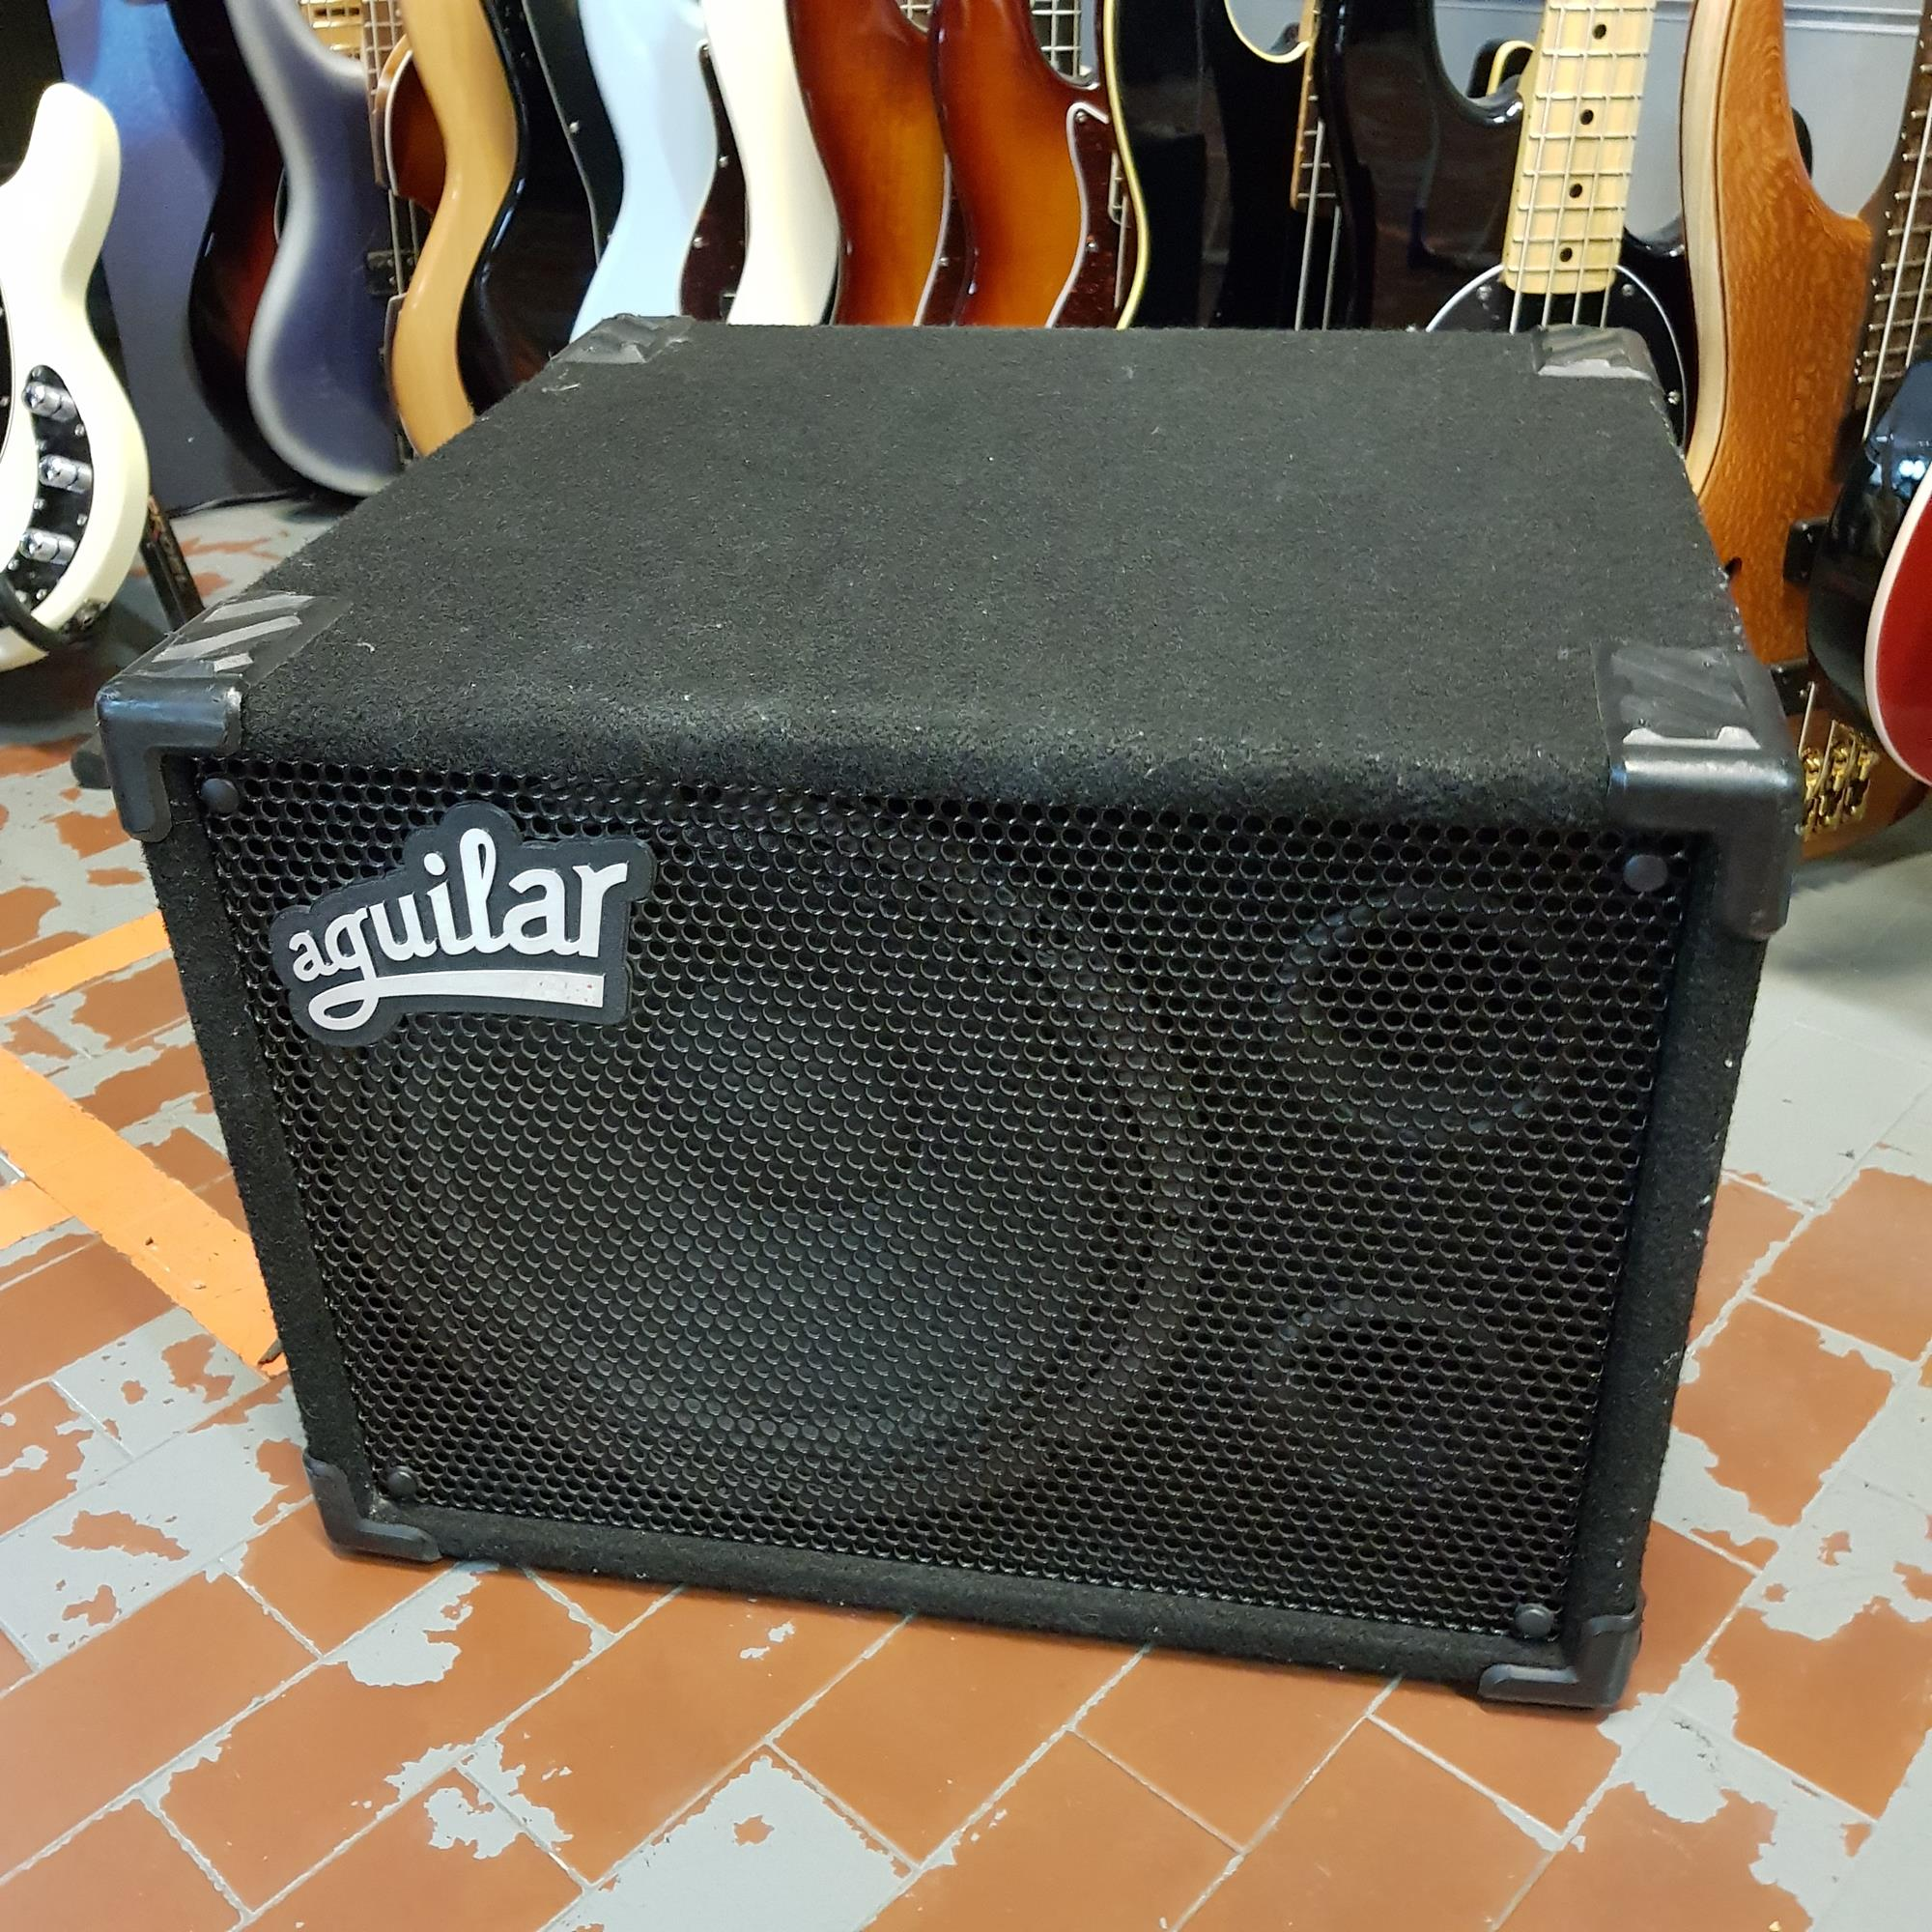 AGUILAR-GS112-NT-CABINET-sku-1623508370920